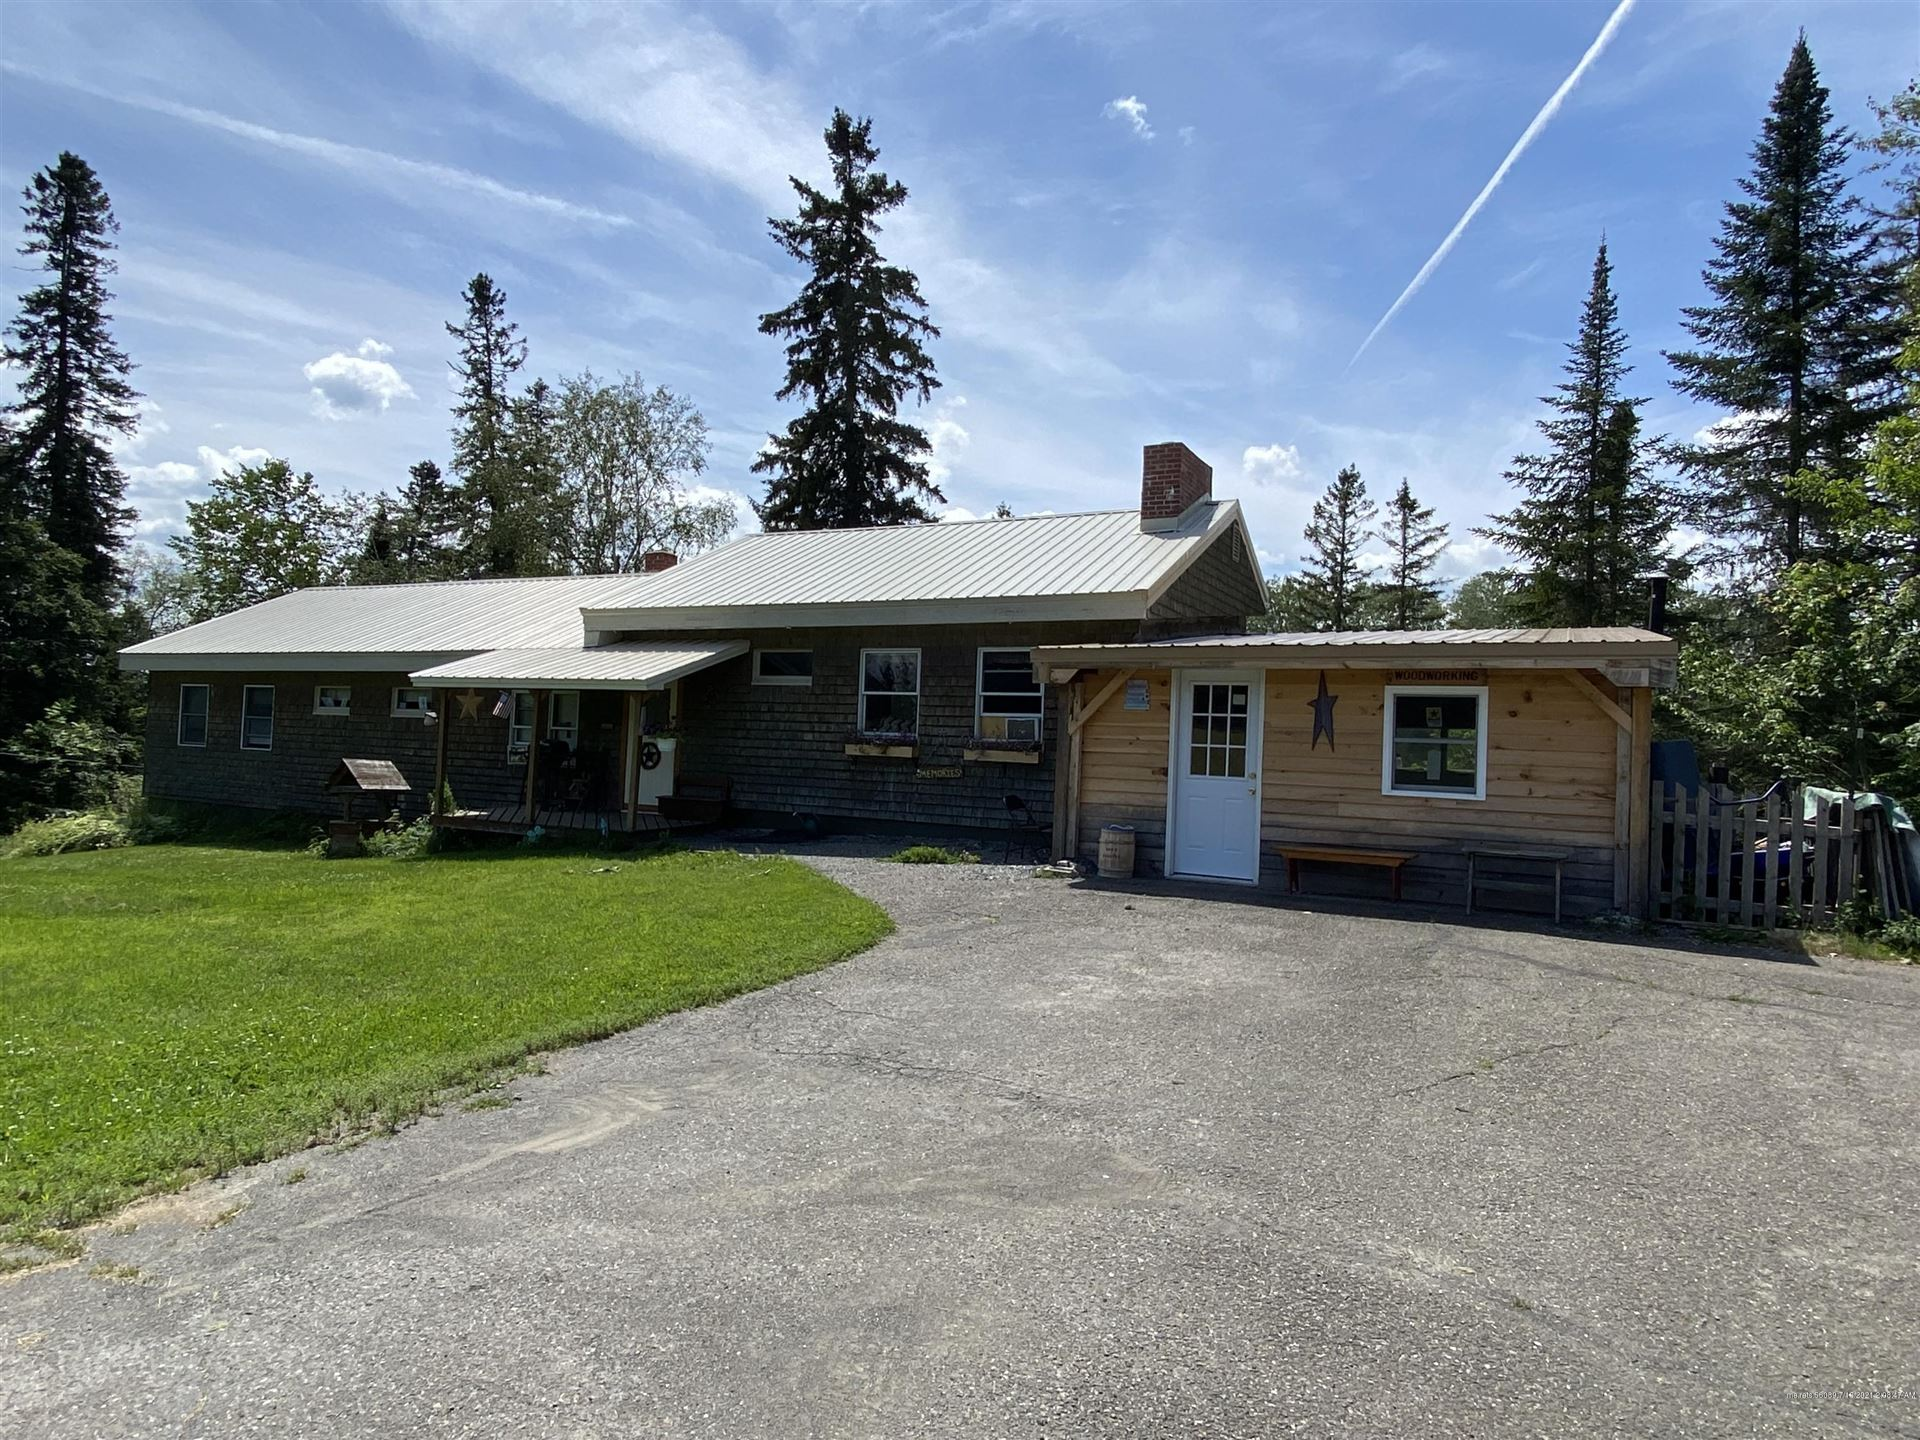 Photo of 341 Grimes Mill Road, Caribou, ME 04736 (MLS # 1500140)